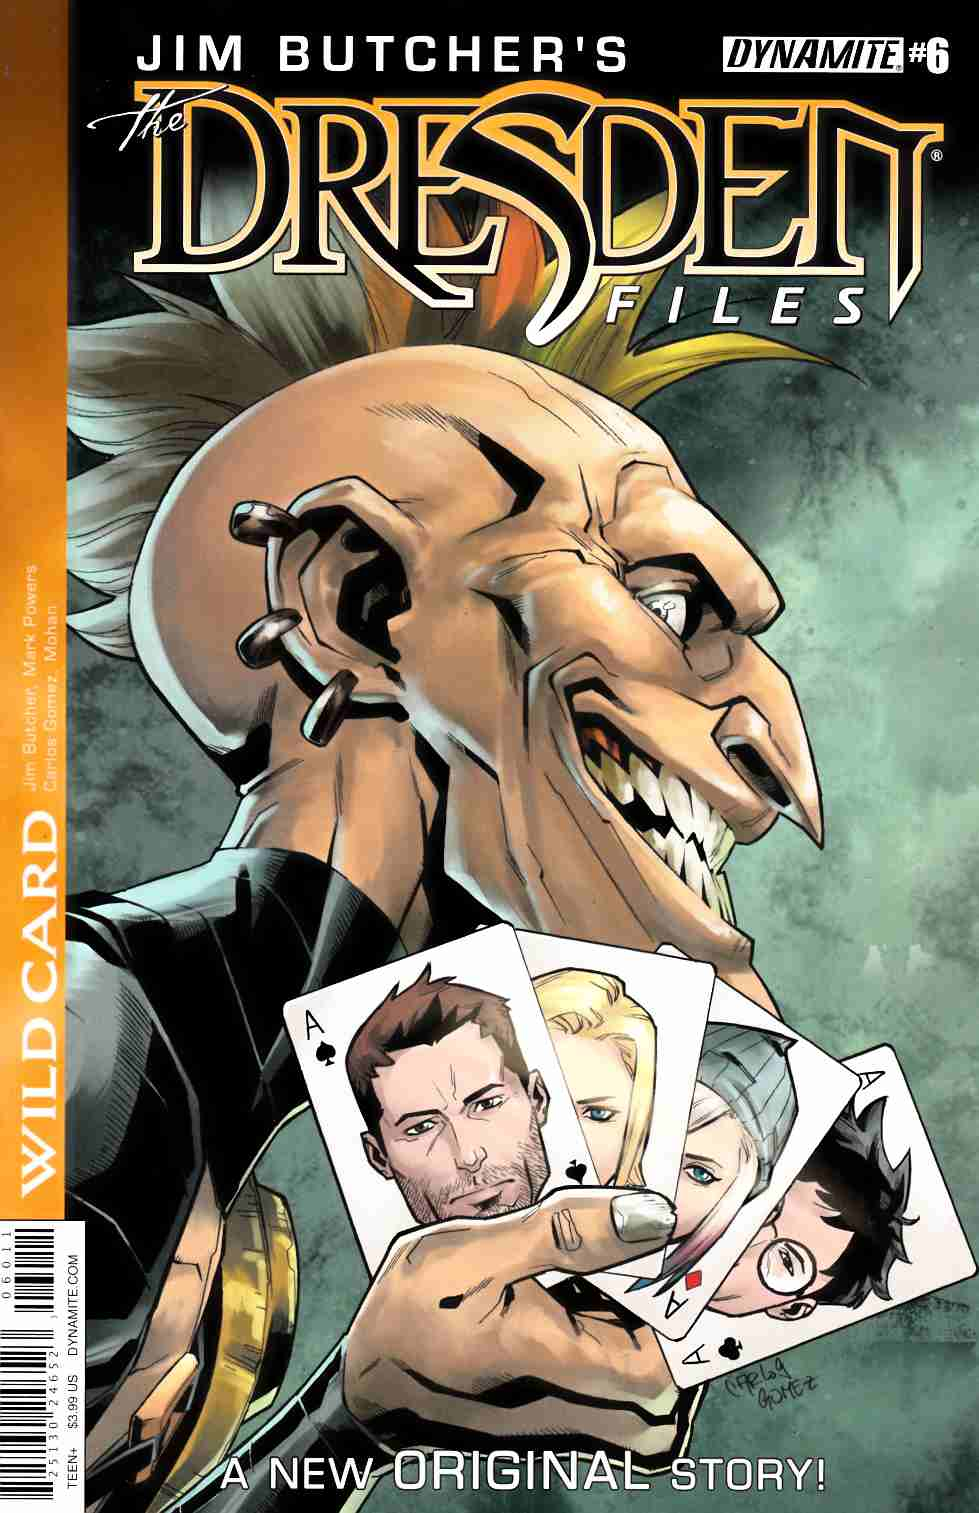 Jim Butcher Dresden Files Wild Card #6 [Dynamite Comic]